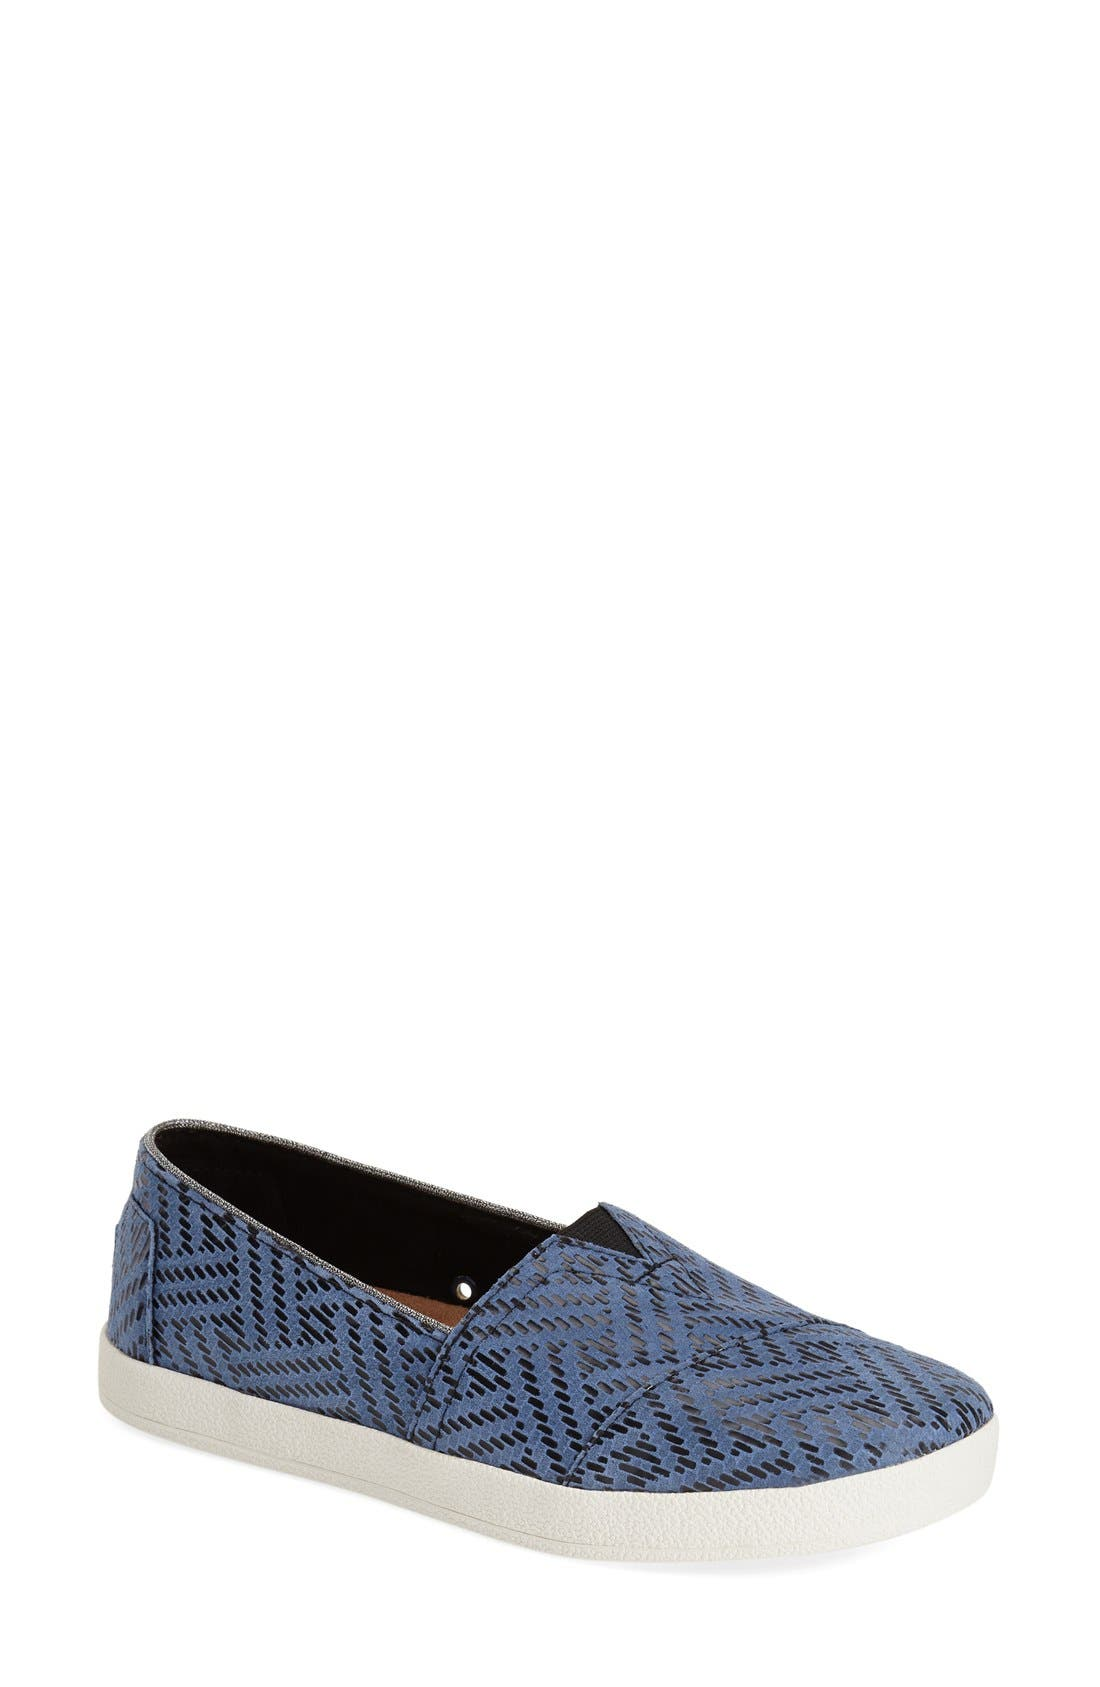 TOMS 'Avalon' Leather Slip-On, Main, color, 420